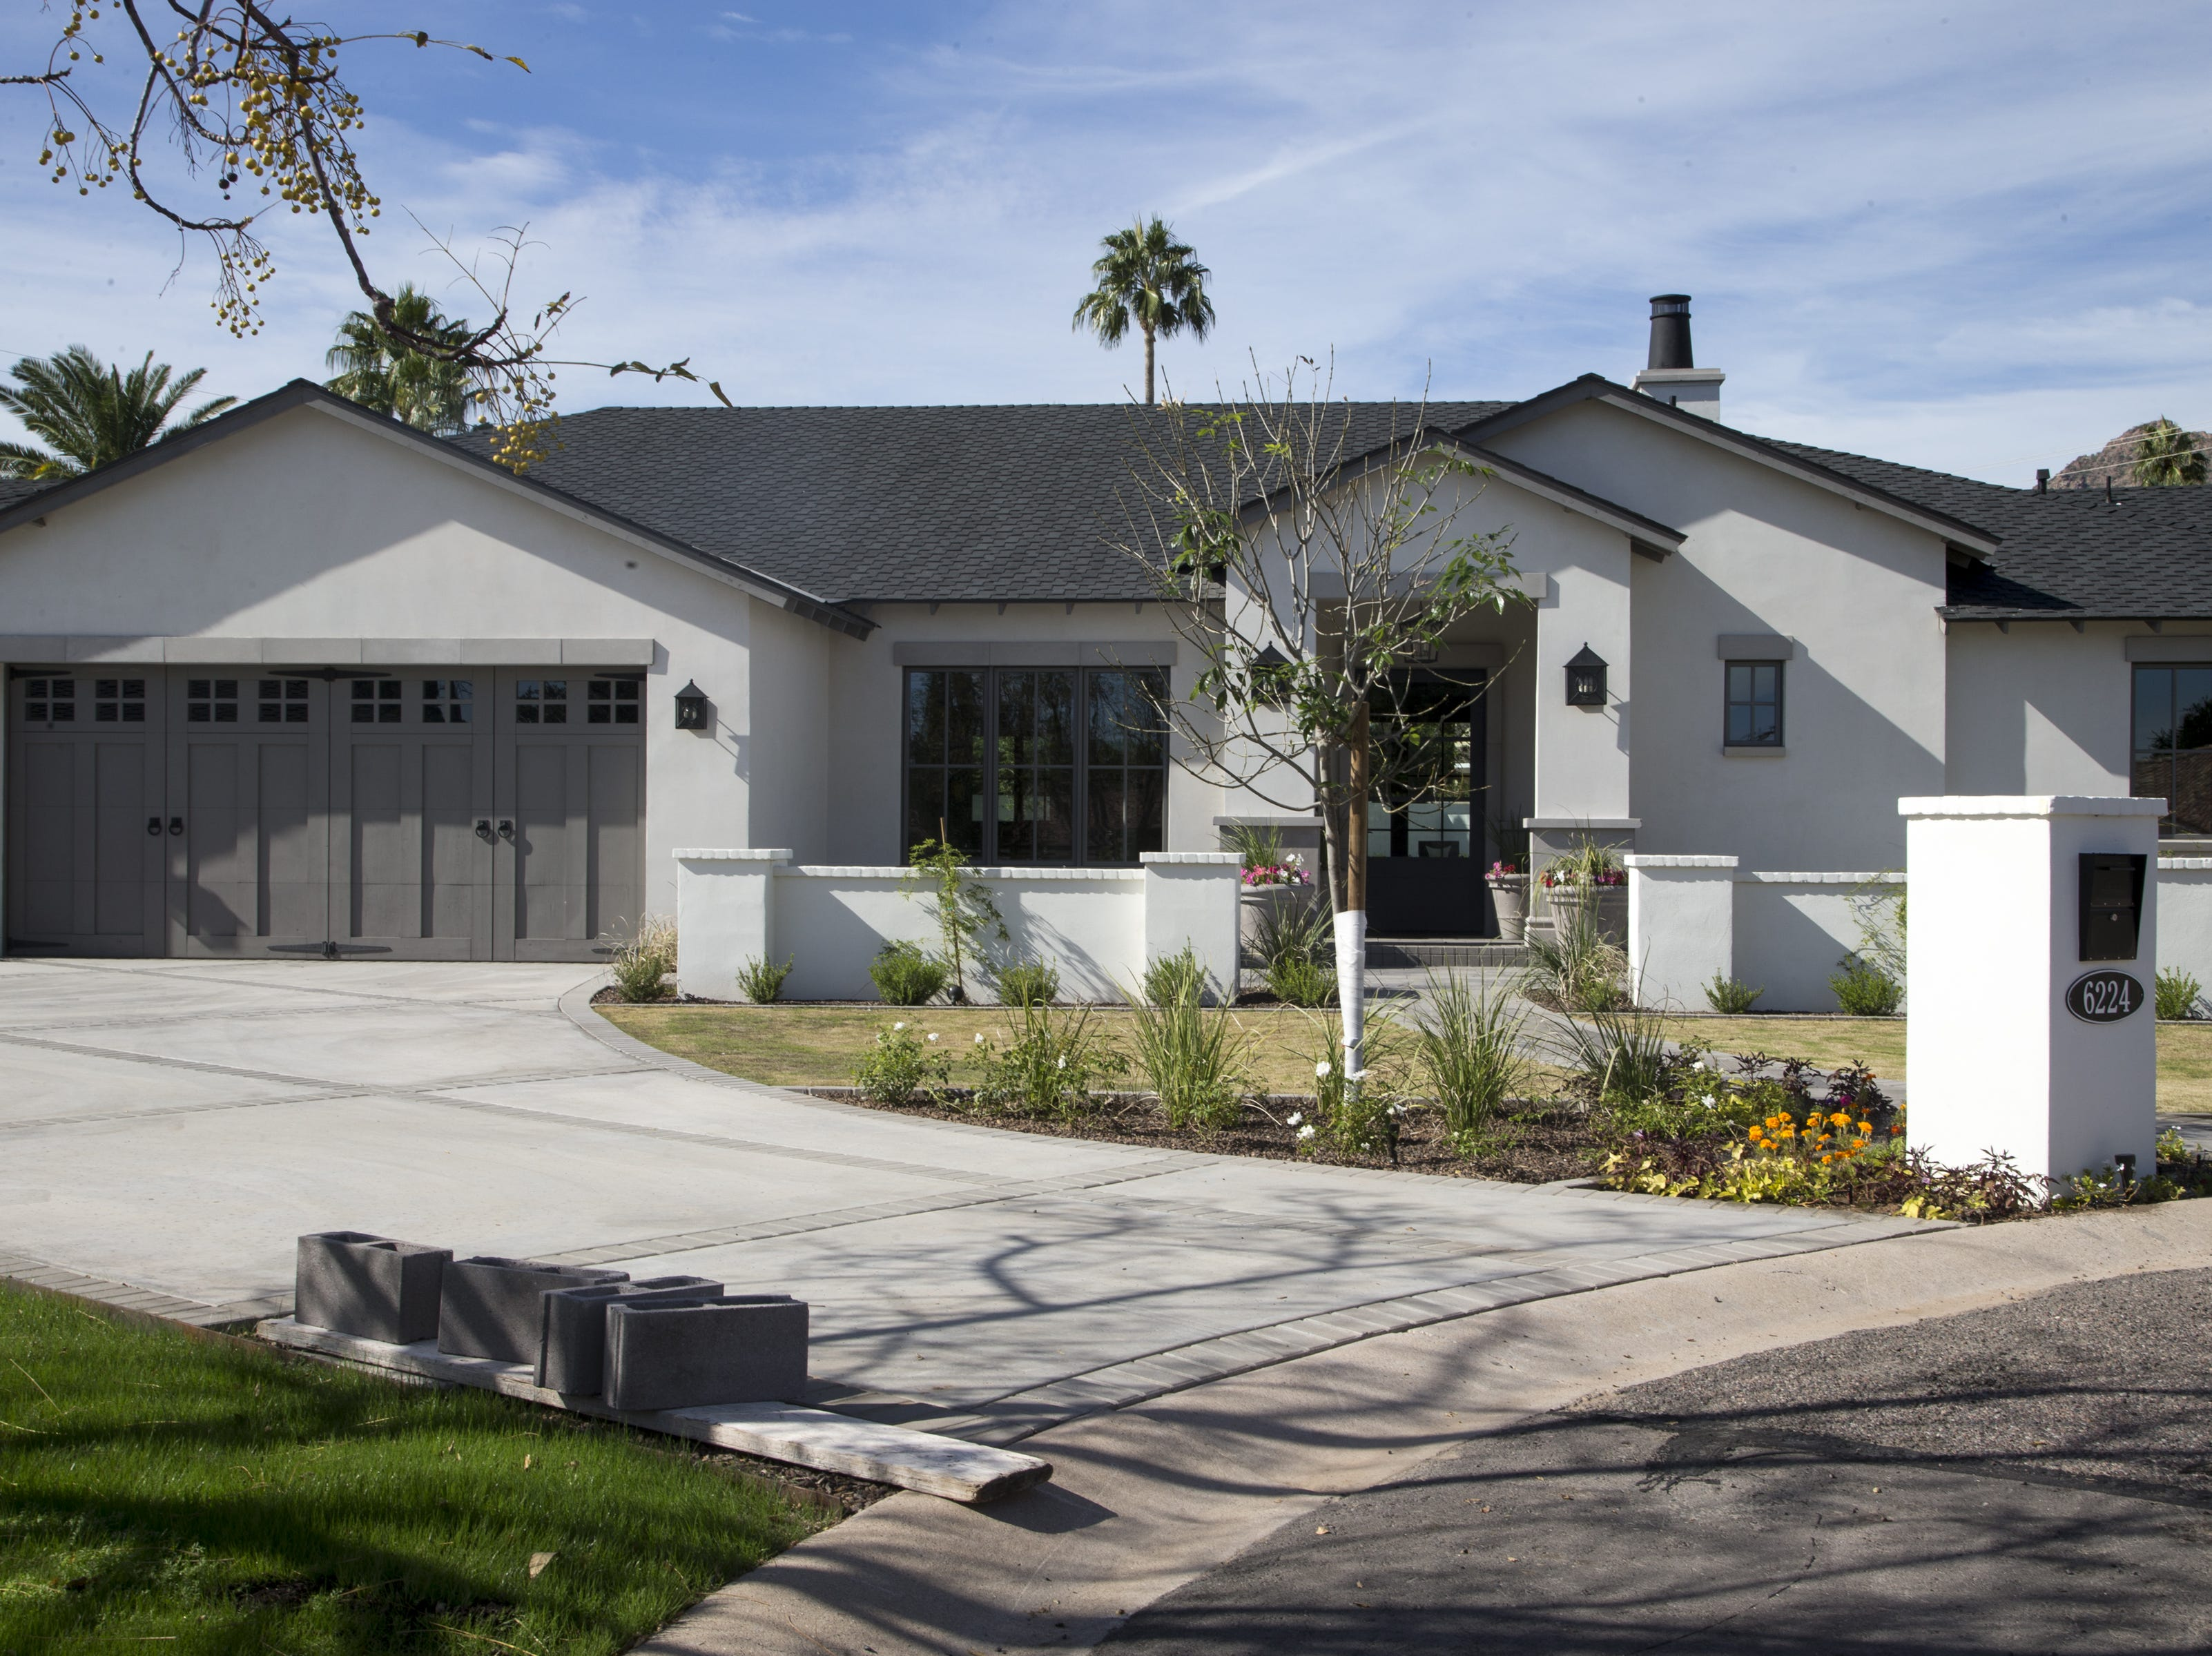 Arizona Diamondbacks third baseman Jake Lamb's new house in the Arcadia community in Scottsdale.